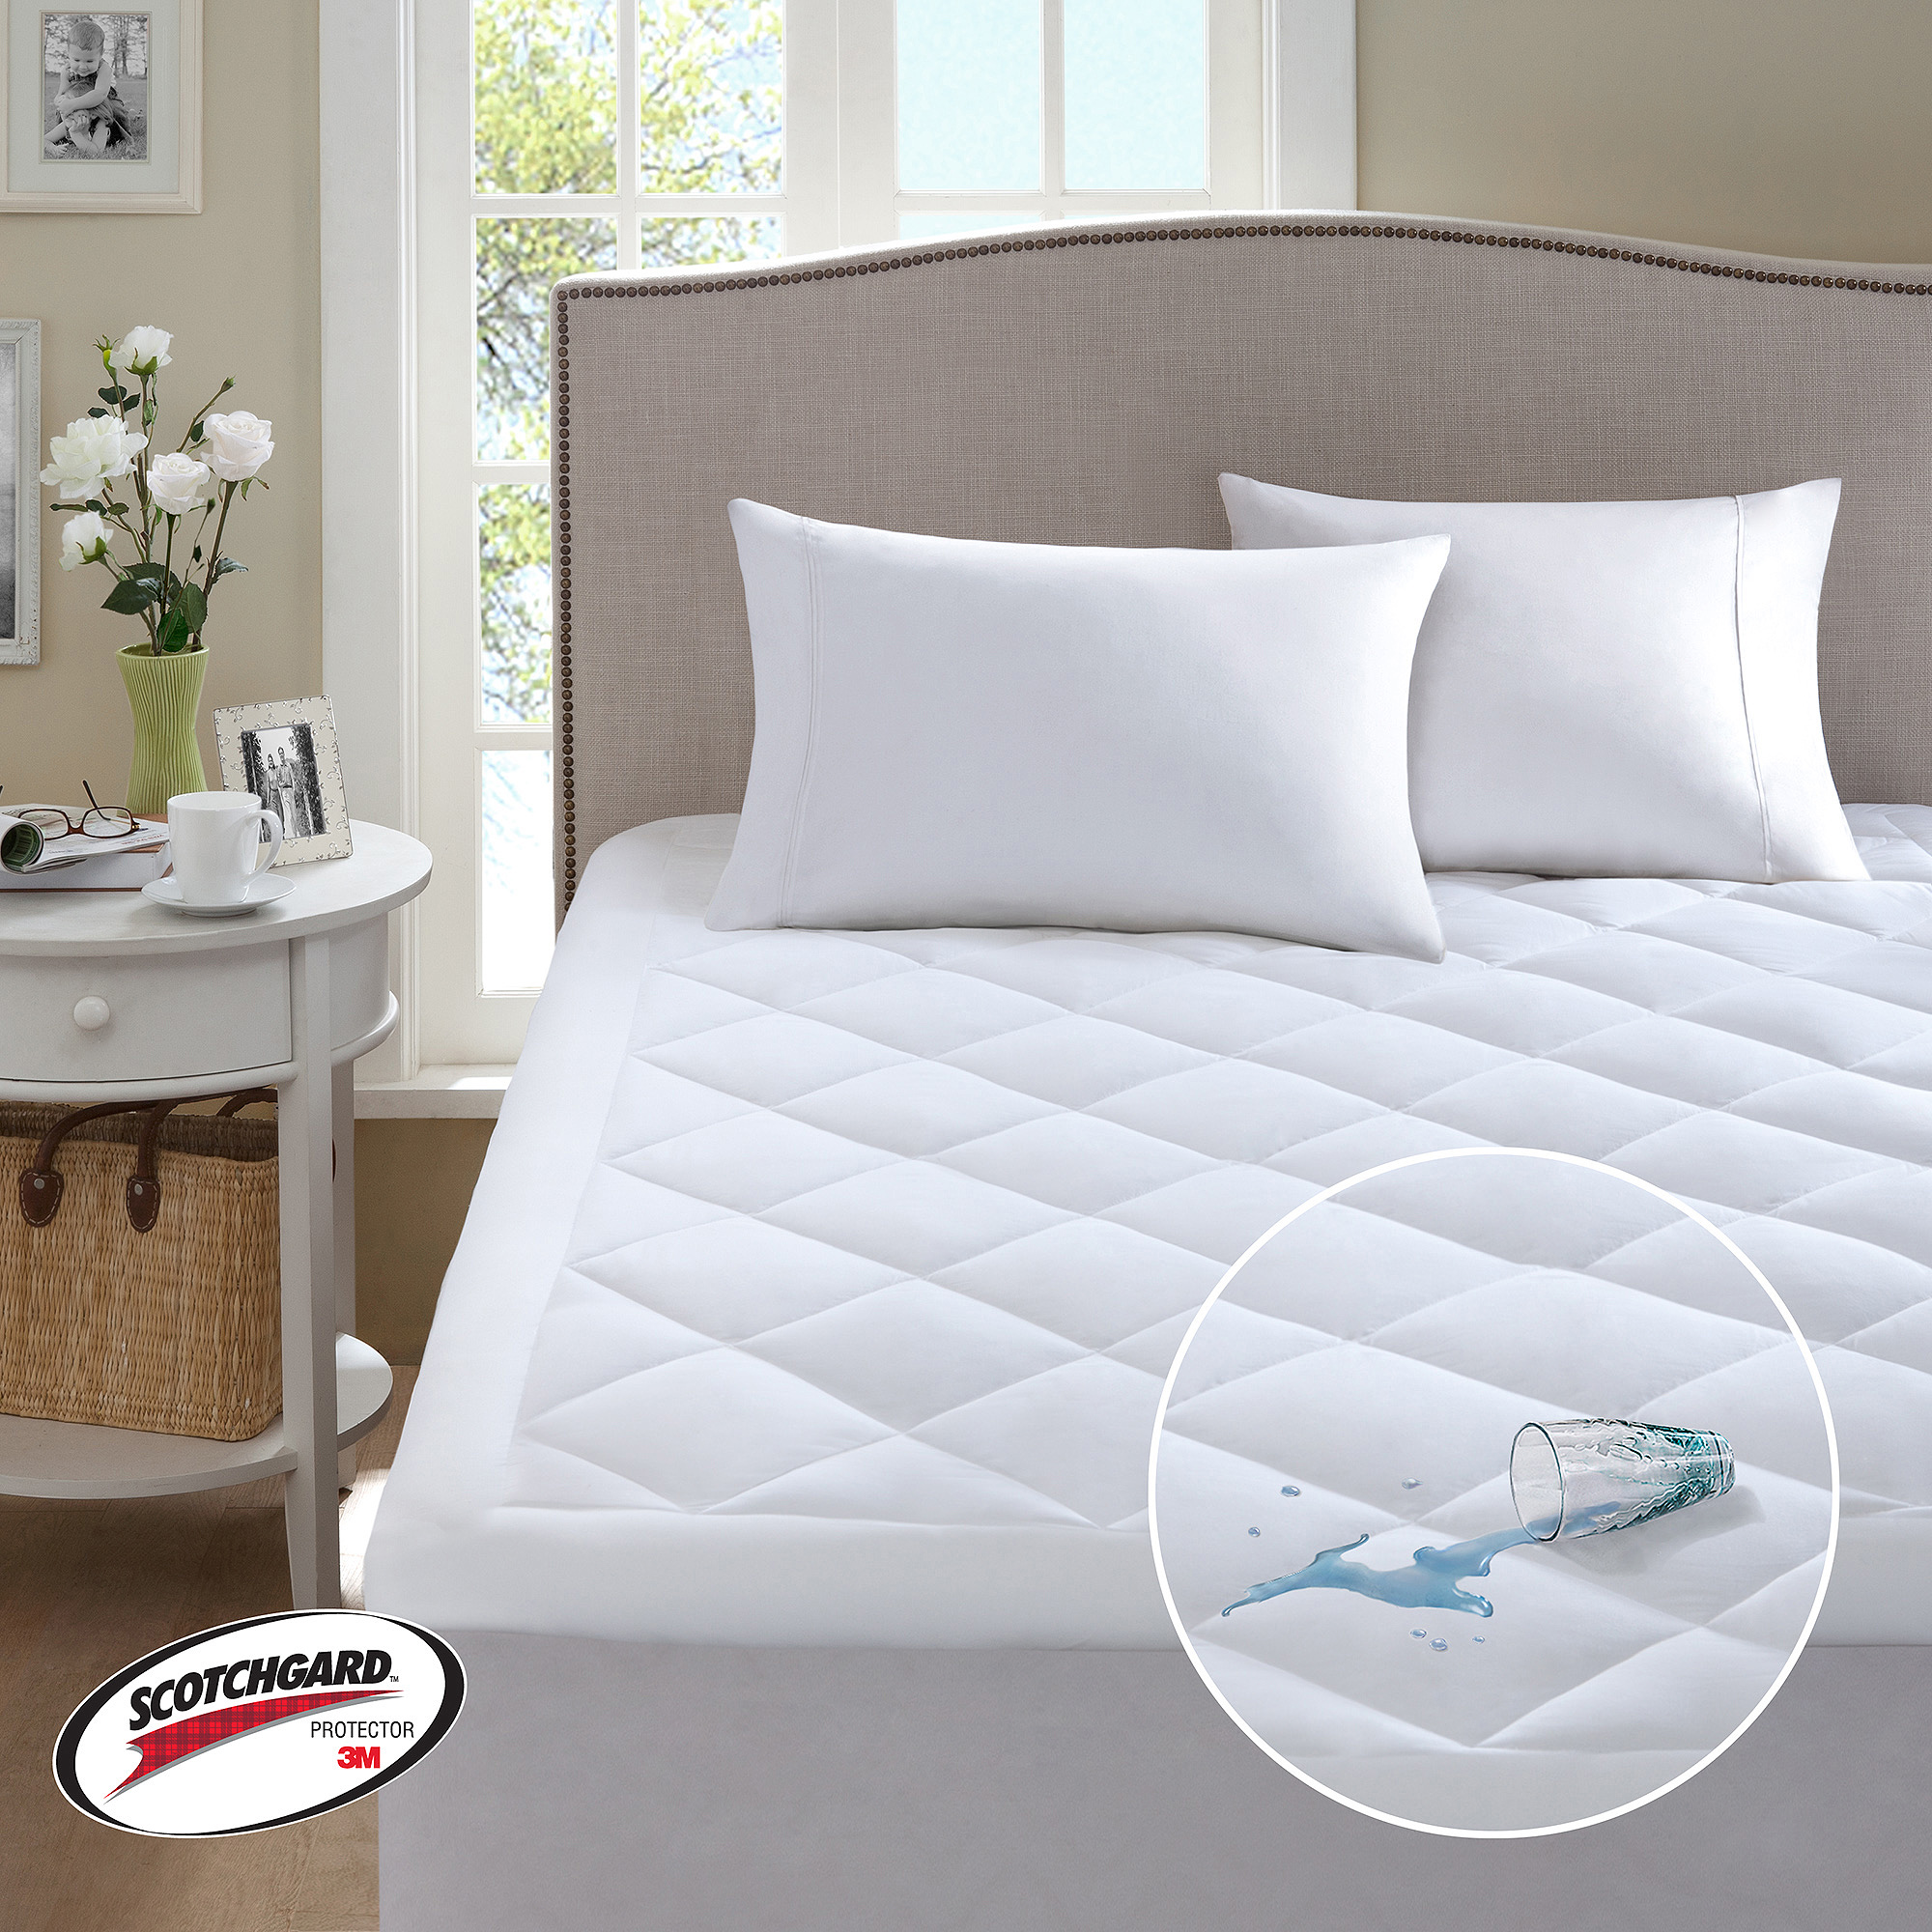 Mainstays Waterproof Fitted Vinyl Mattress Protector Walmartcom